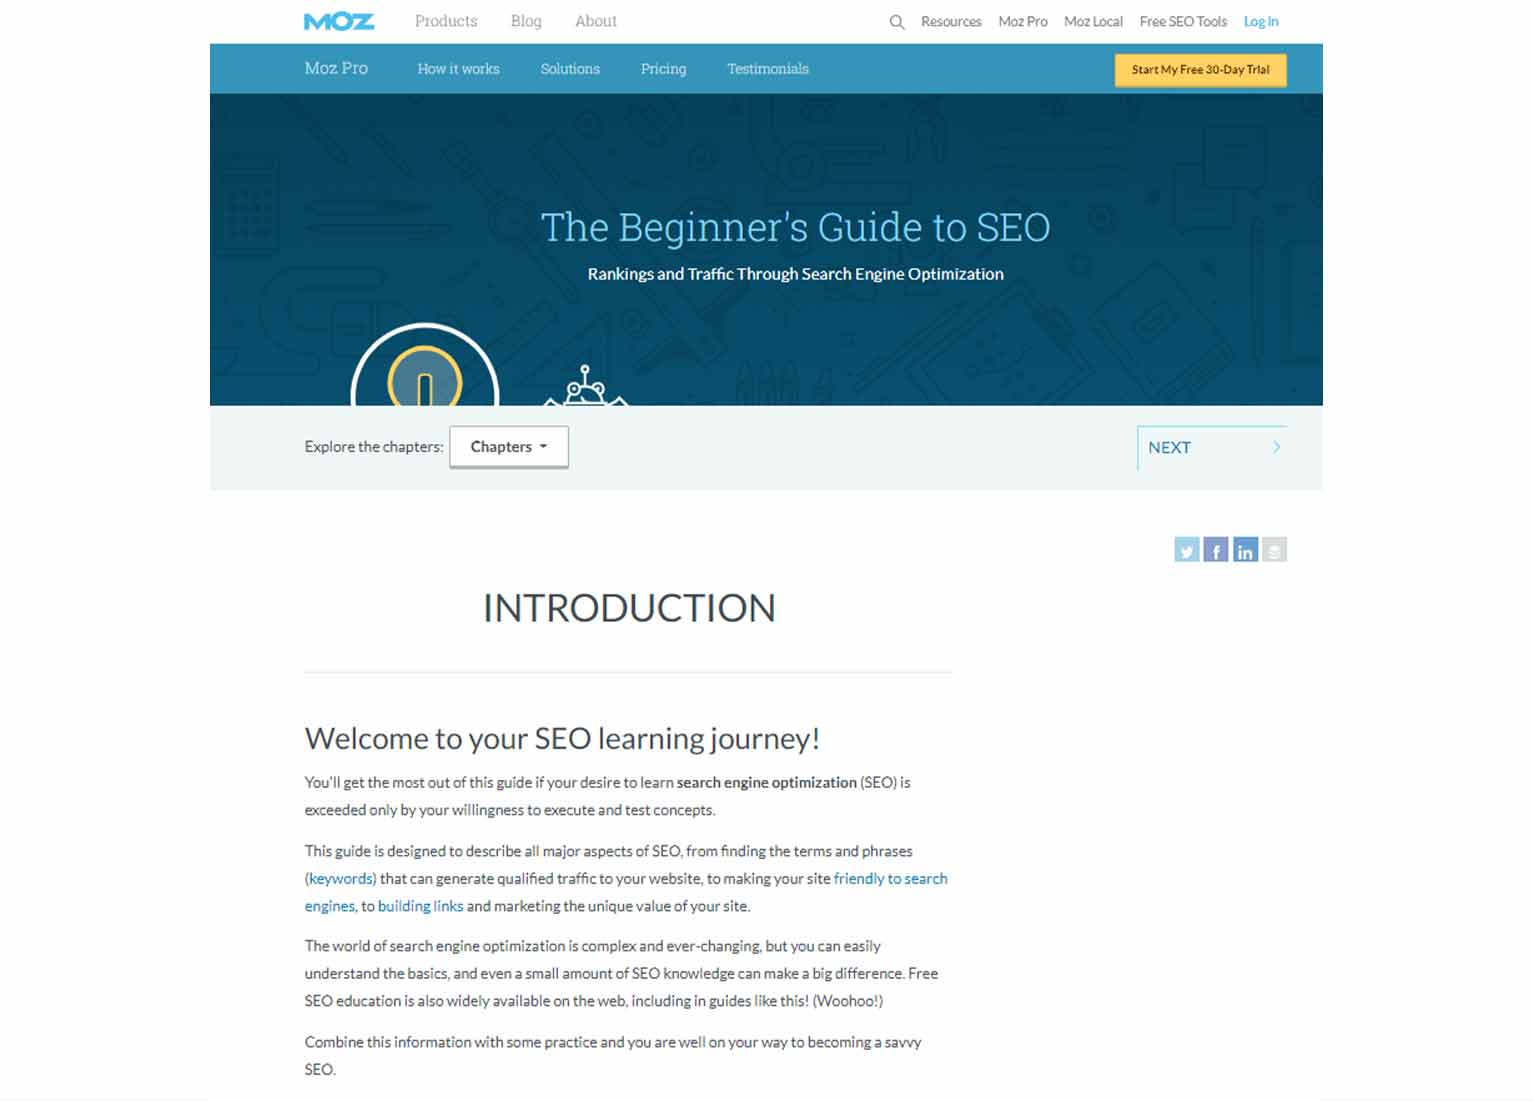 Moz's The Beginner's Guide to SEO pillar page, featuring a brief introduction.